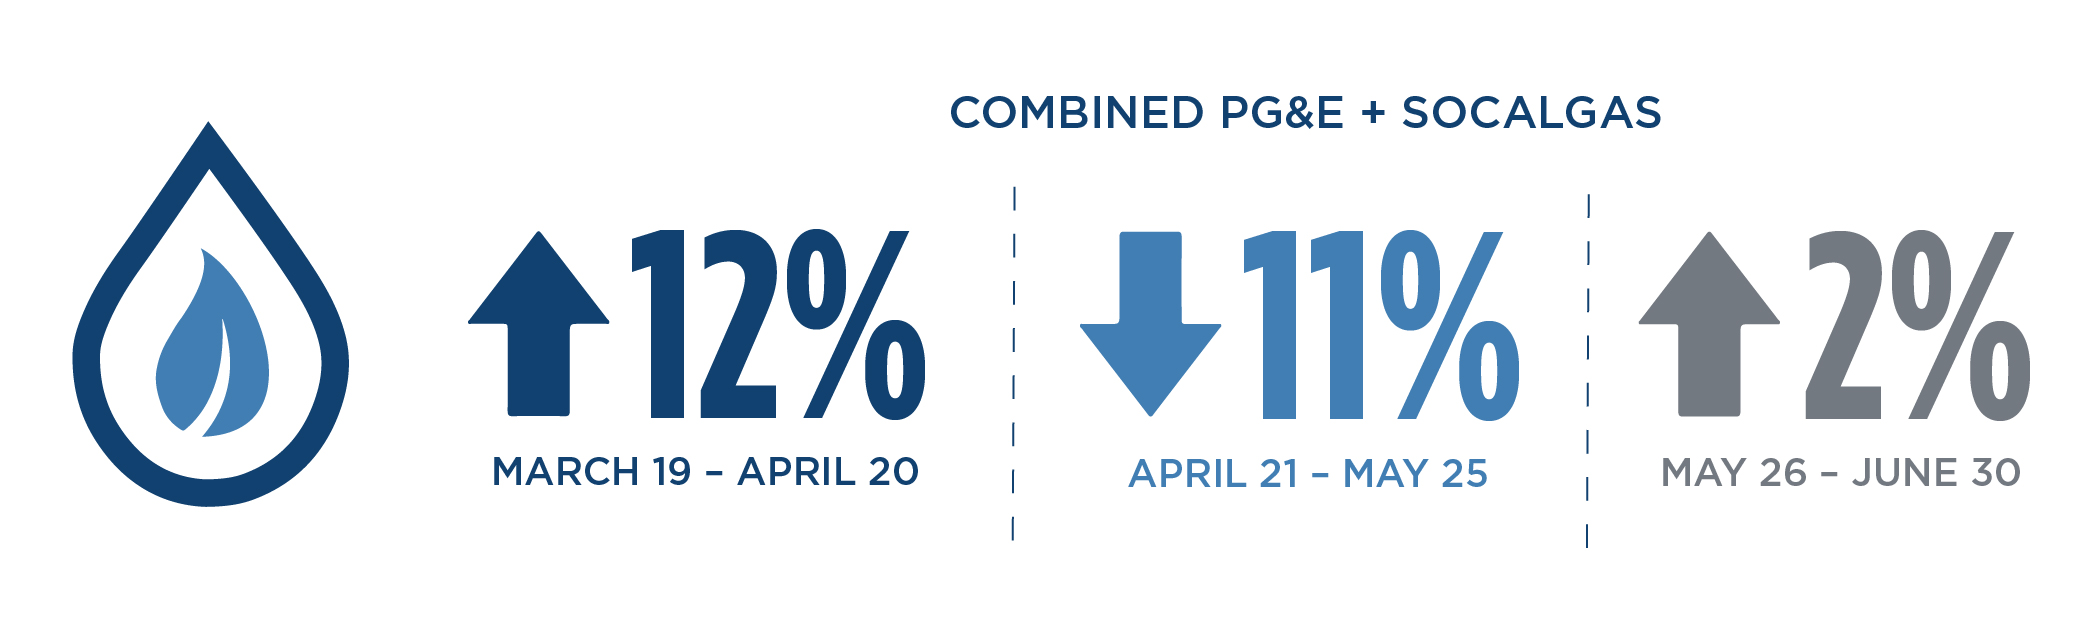 Infographic showing the increase of natural gas demand by 12% in Late March - Mid April, dropped 11% in Late April - May during the stay-at-home order and was up 2% Late May through June.